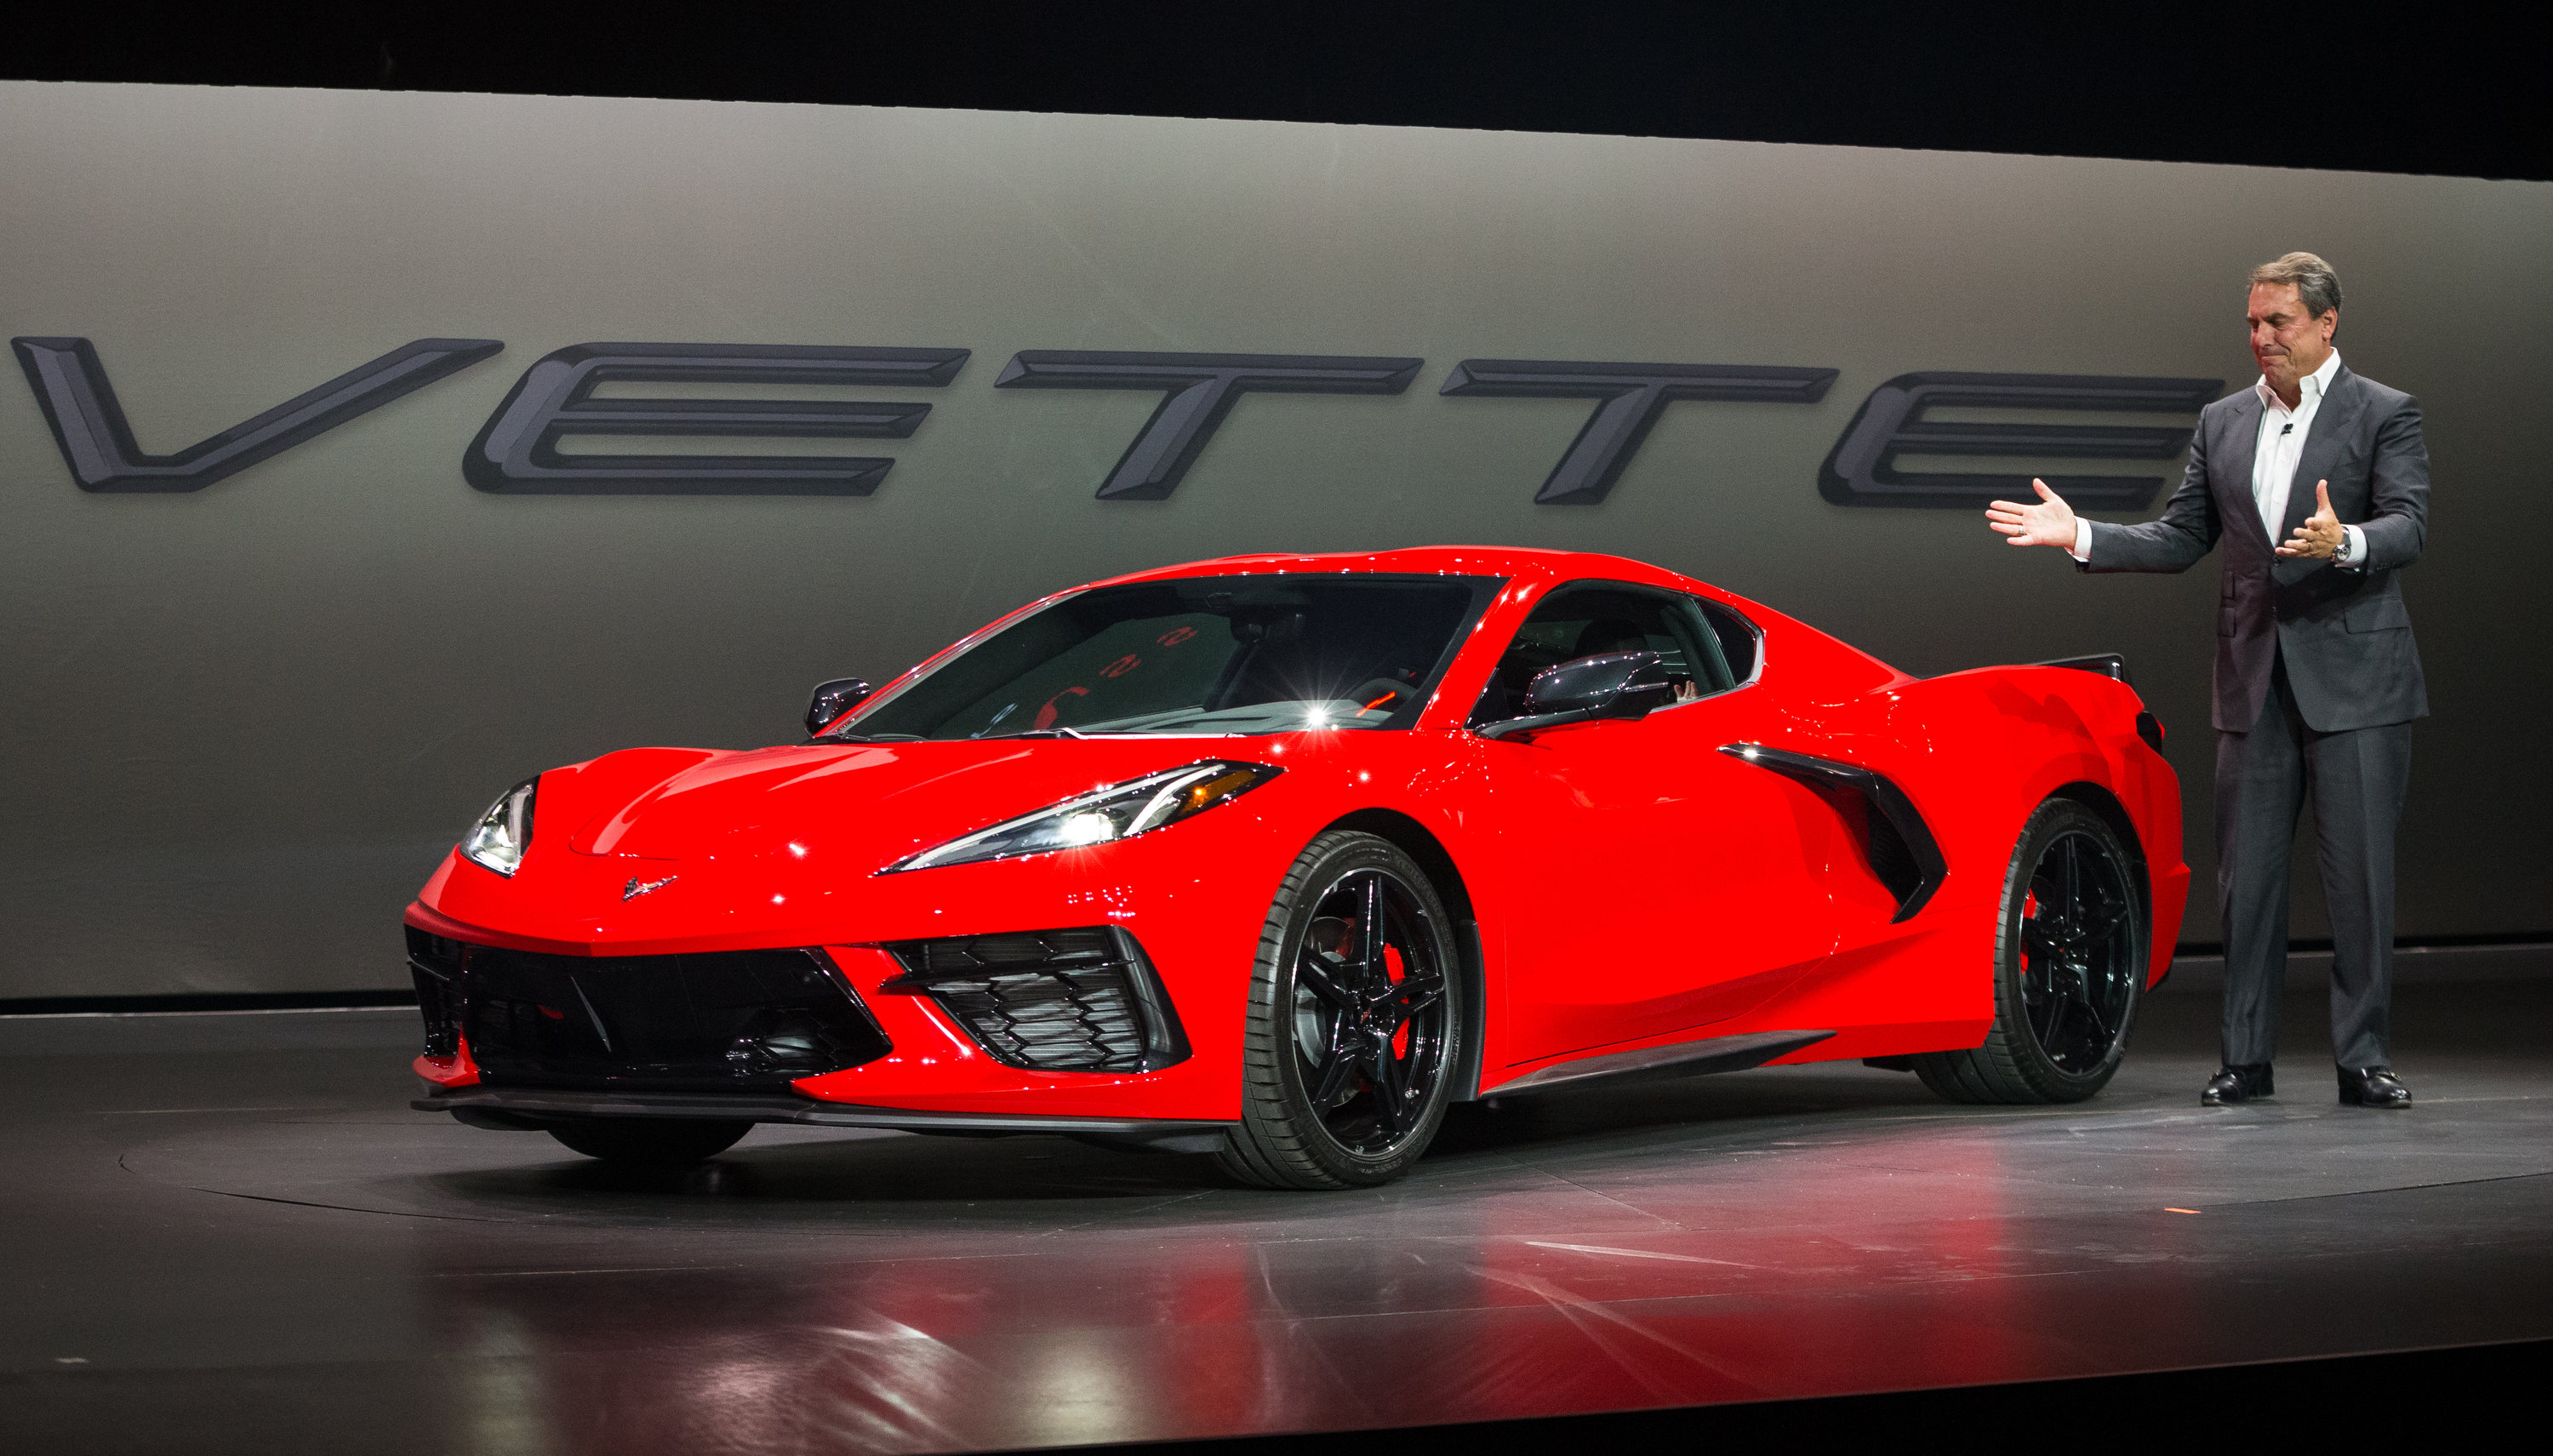 2020 Chevrolet Corvette C8 - Come Check it Out at Glendora Chevrolet